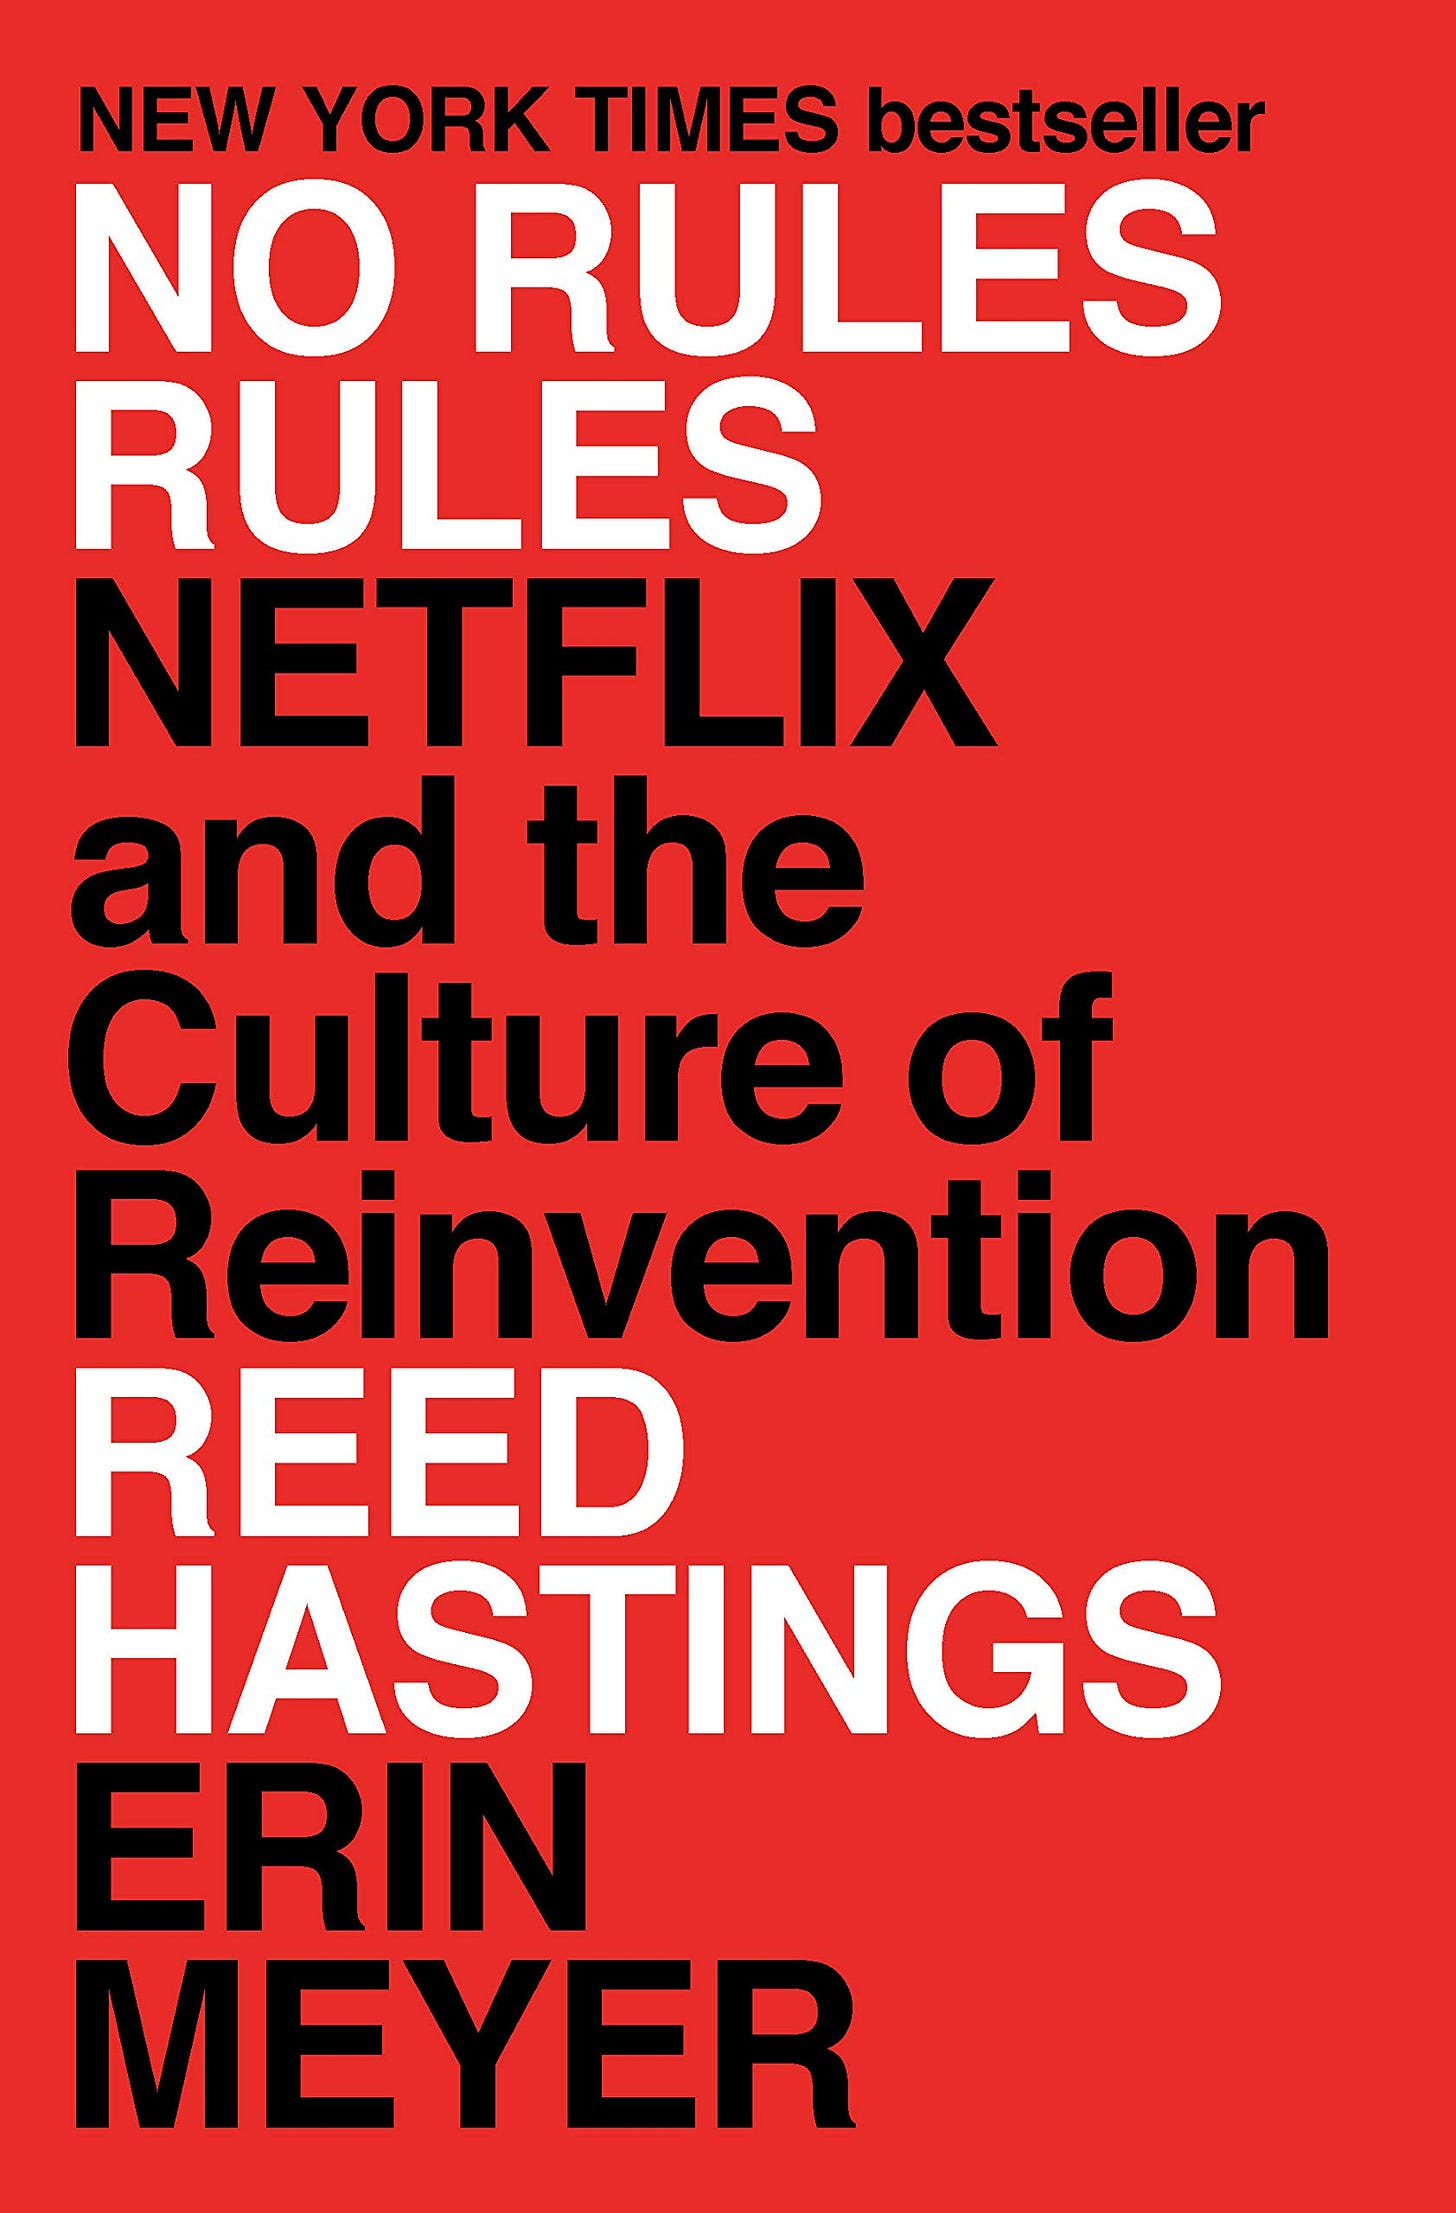 No Rules Rules: Netflix and the Culture of Reinvention: Hastings, Reed,  Meyer, Erin: 9781984877864: Amazon.com: Books